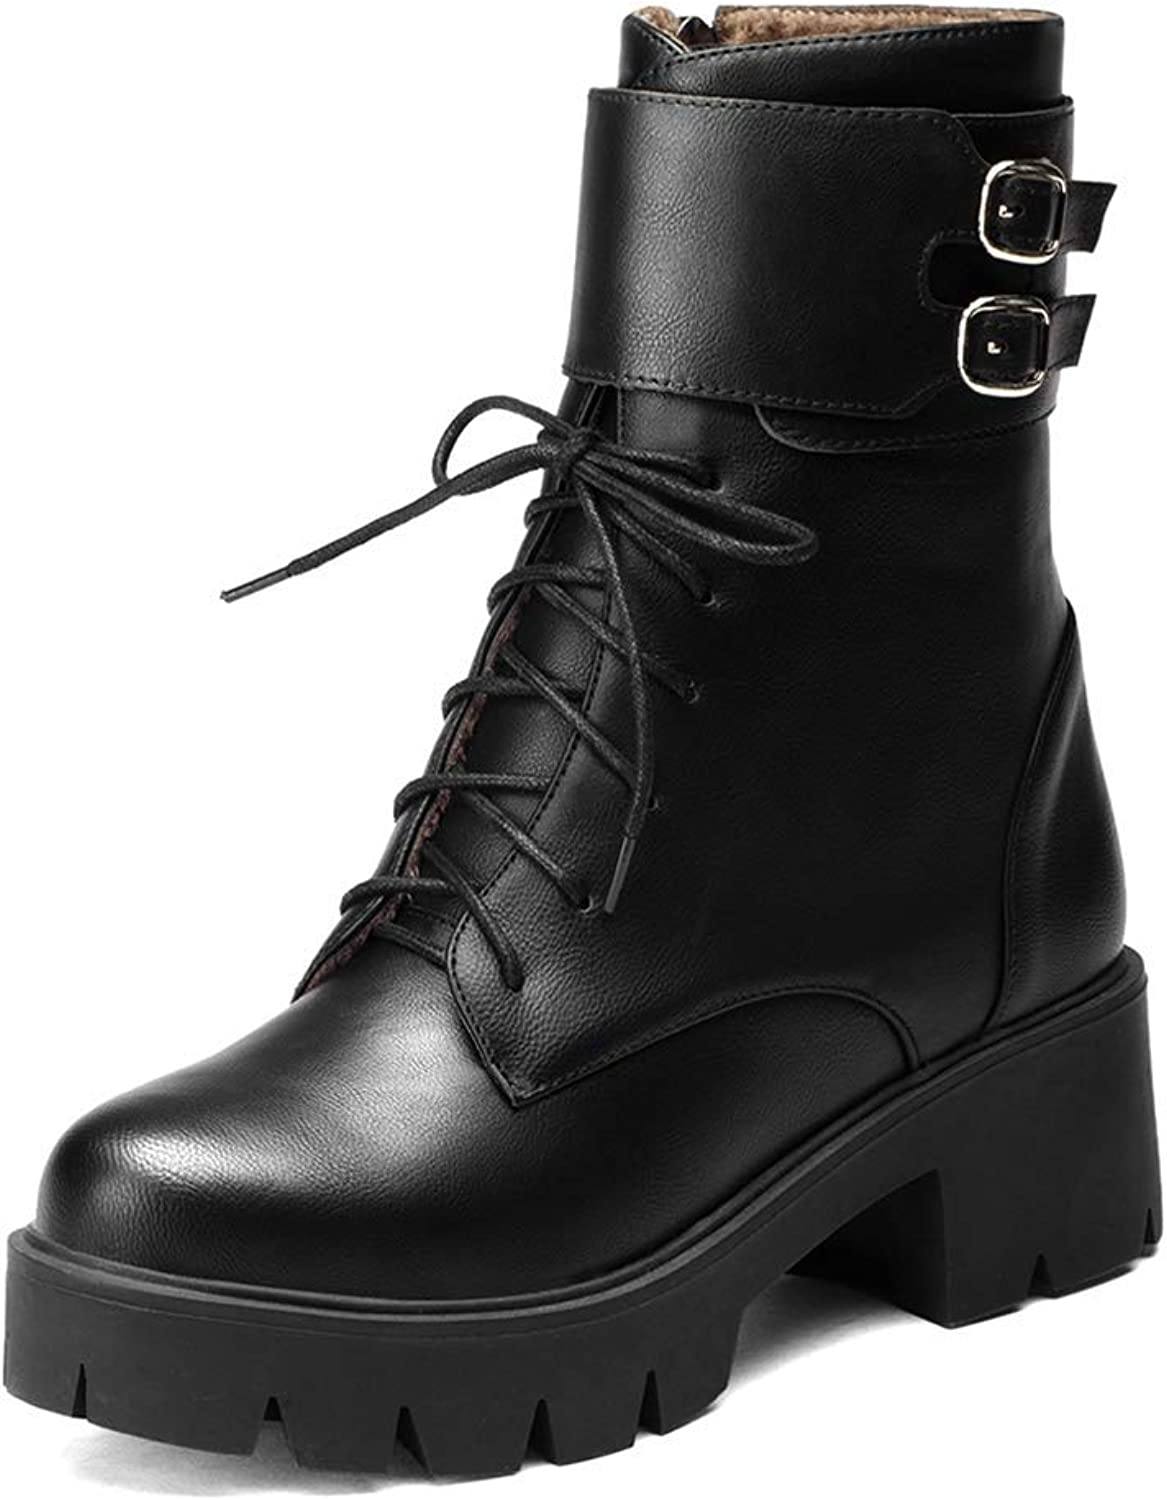 Beautiful - Fashion Women's Comfy Lace Up Platform Martin Boots Round Toe Slip on Chunky Low Heel Leisure Ankle Booties